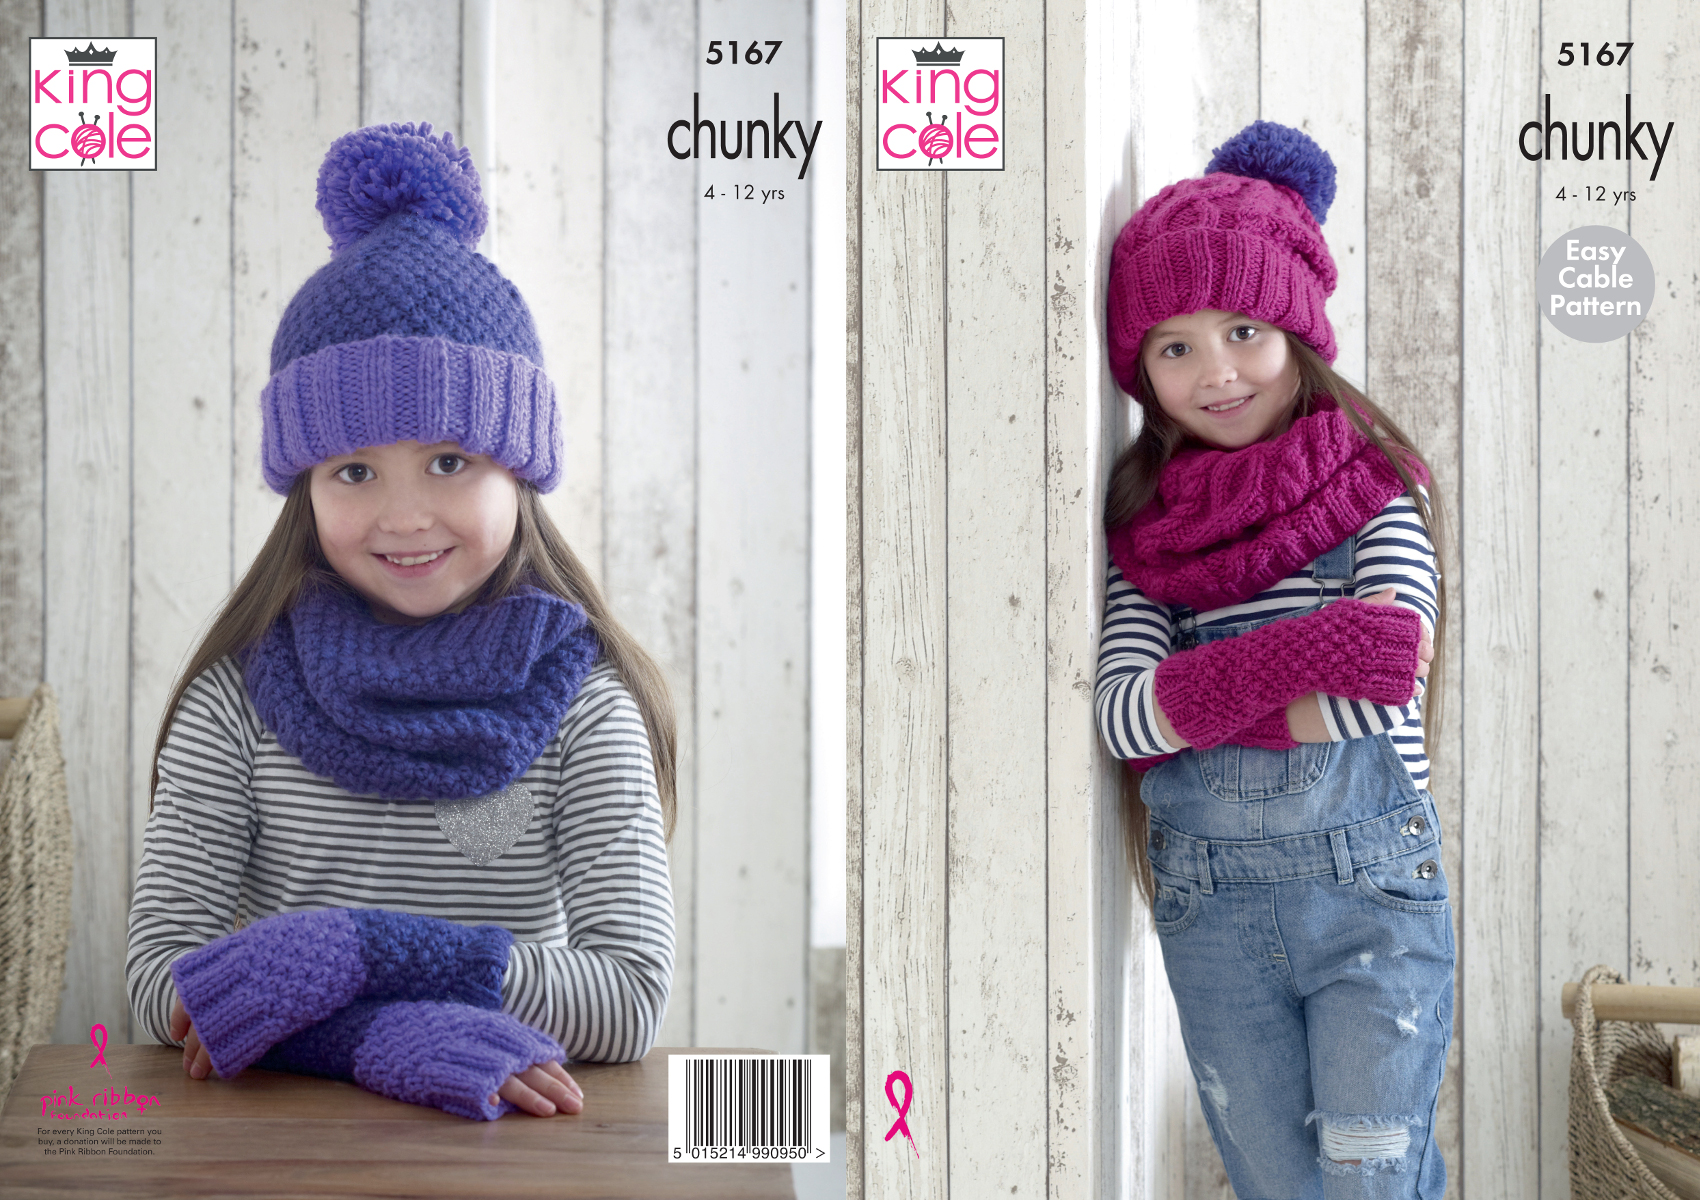 King Cole Chunky Knitting Pattern Girls Easy Cable Mittens Snoods ...